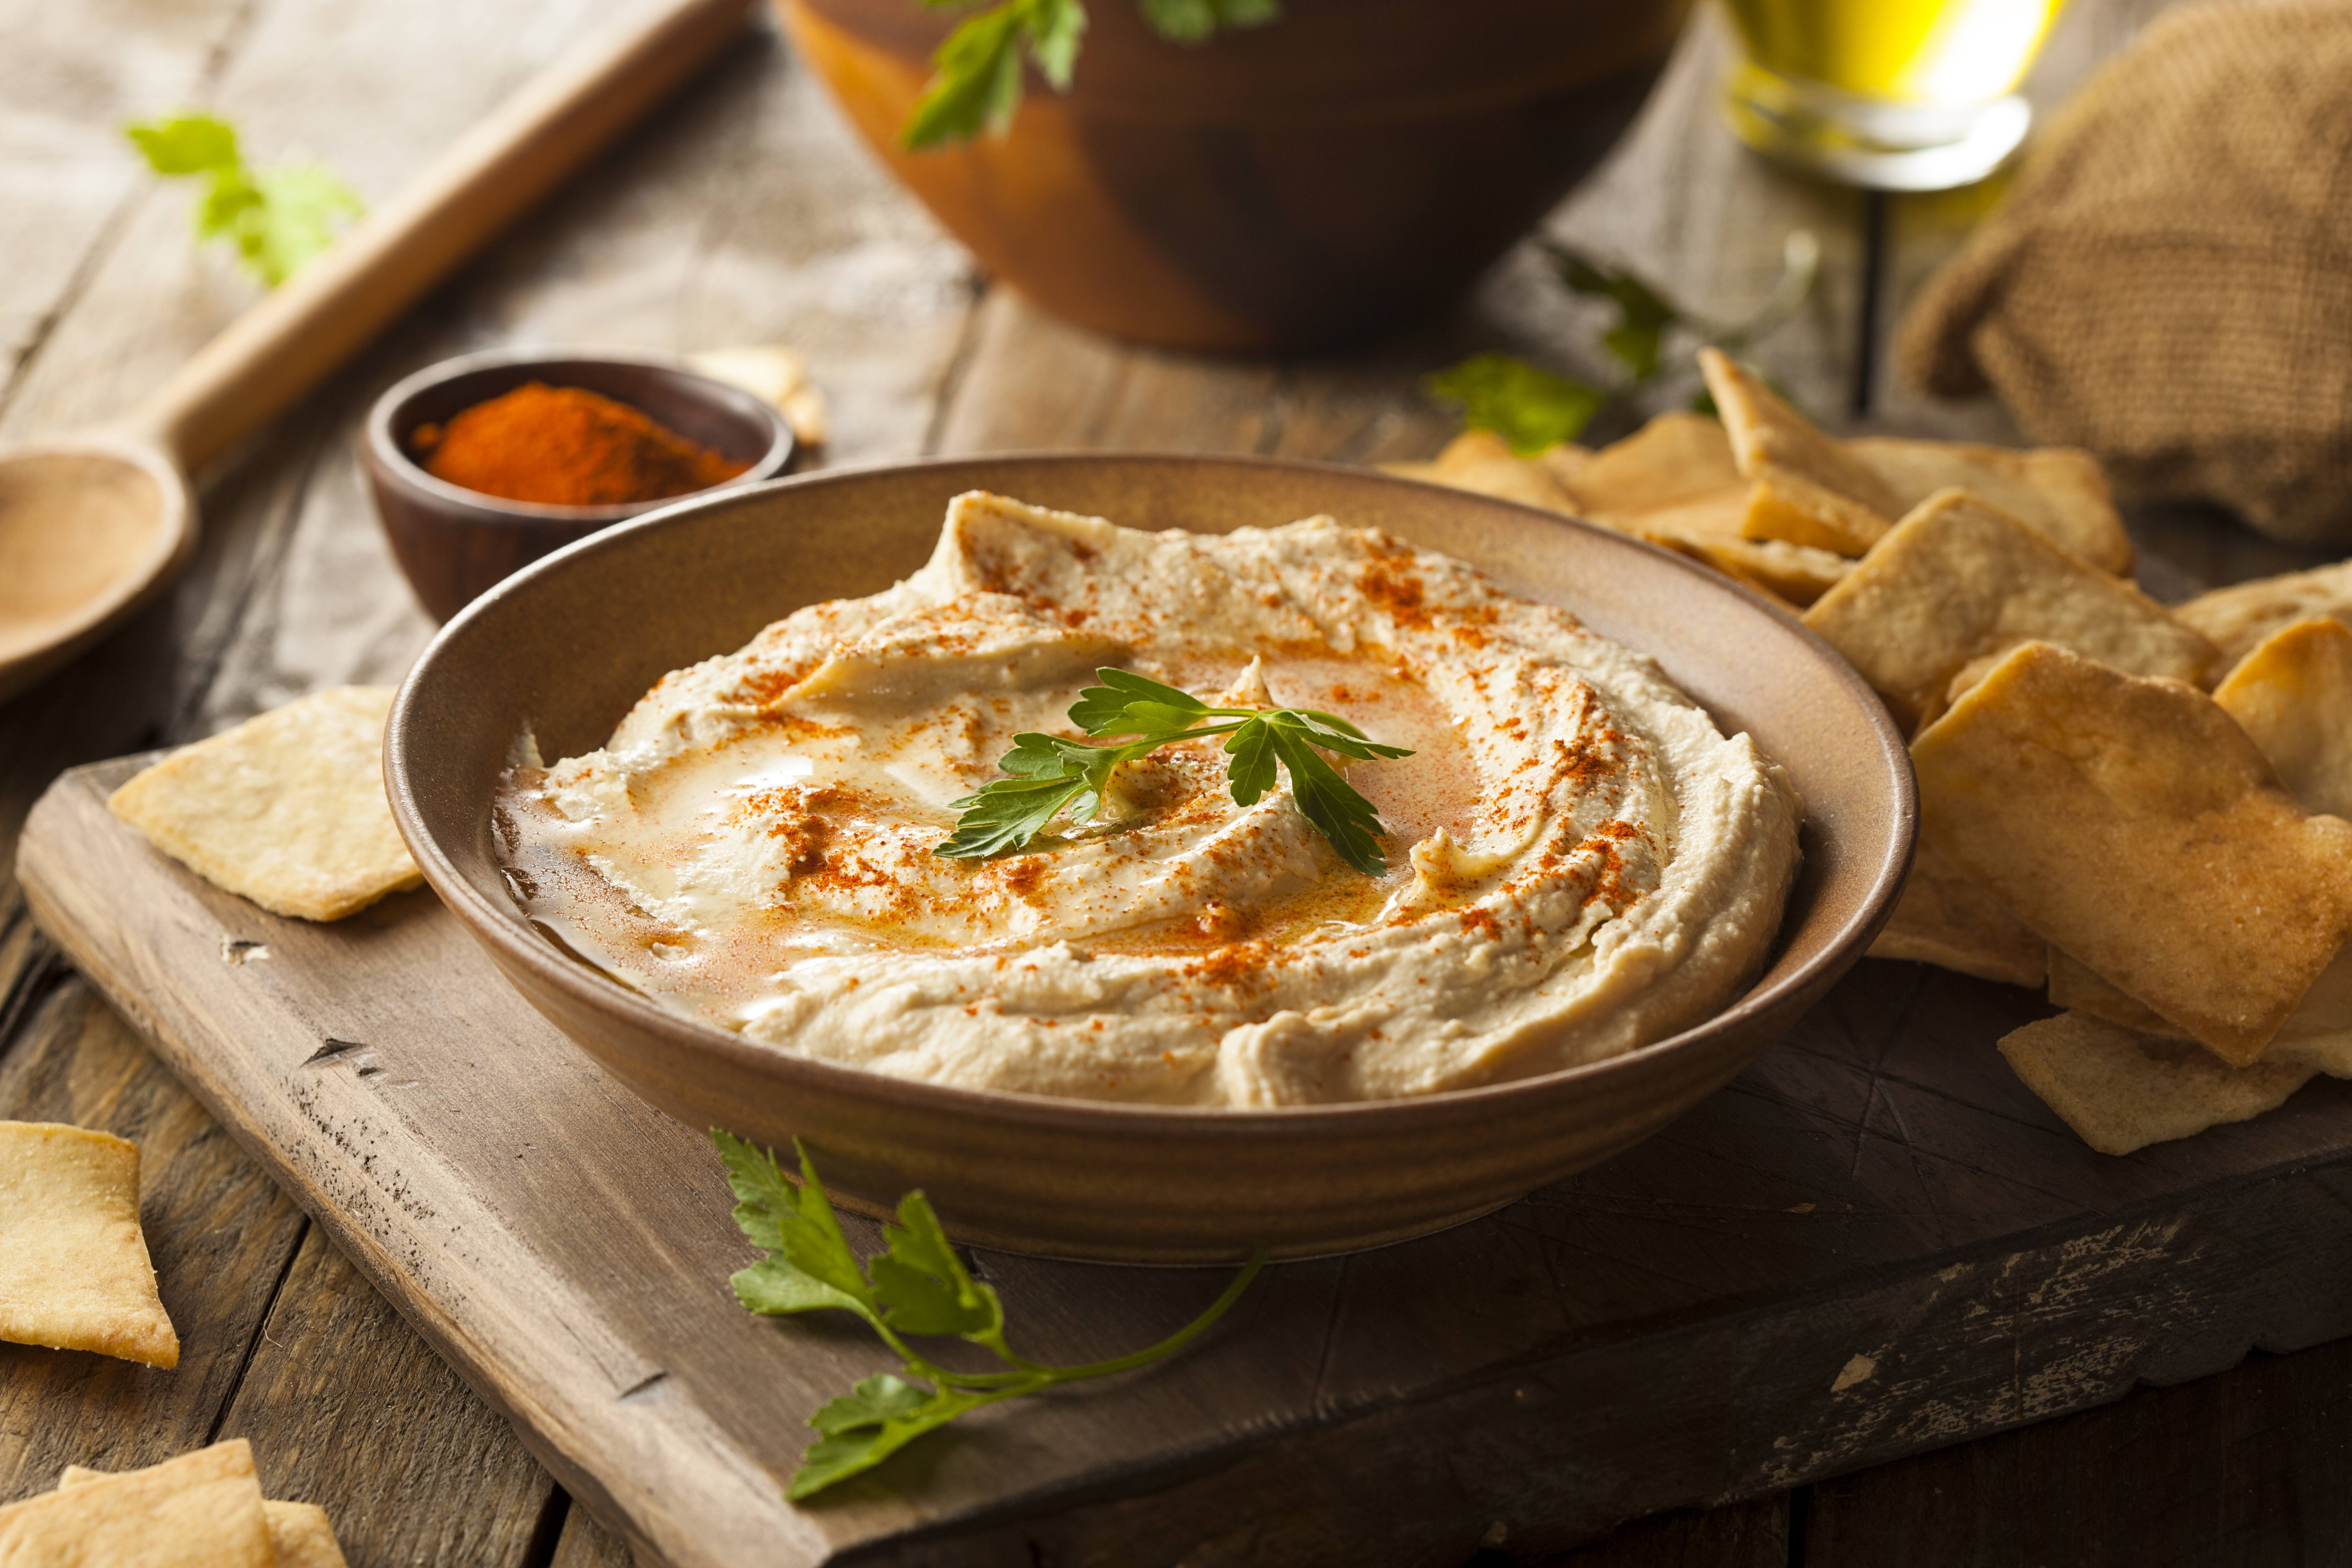 an appetizer bowl filled with a healthy hummus snack